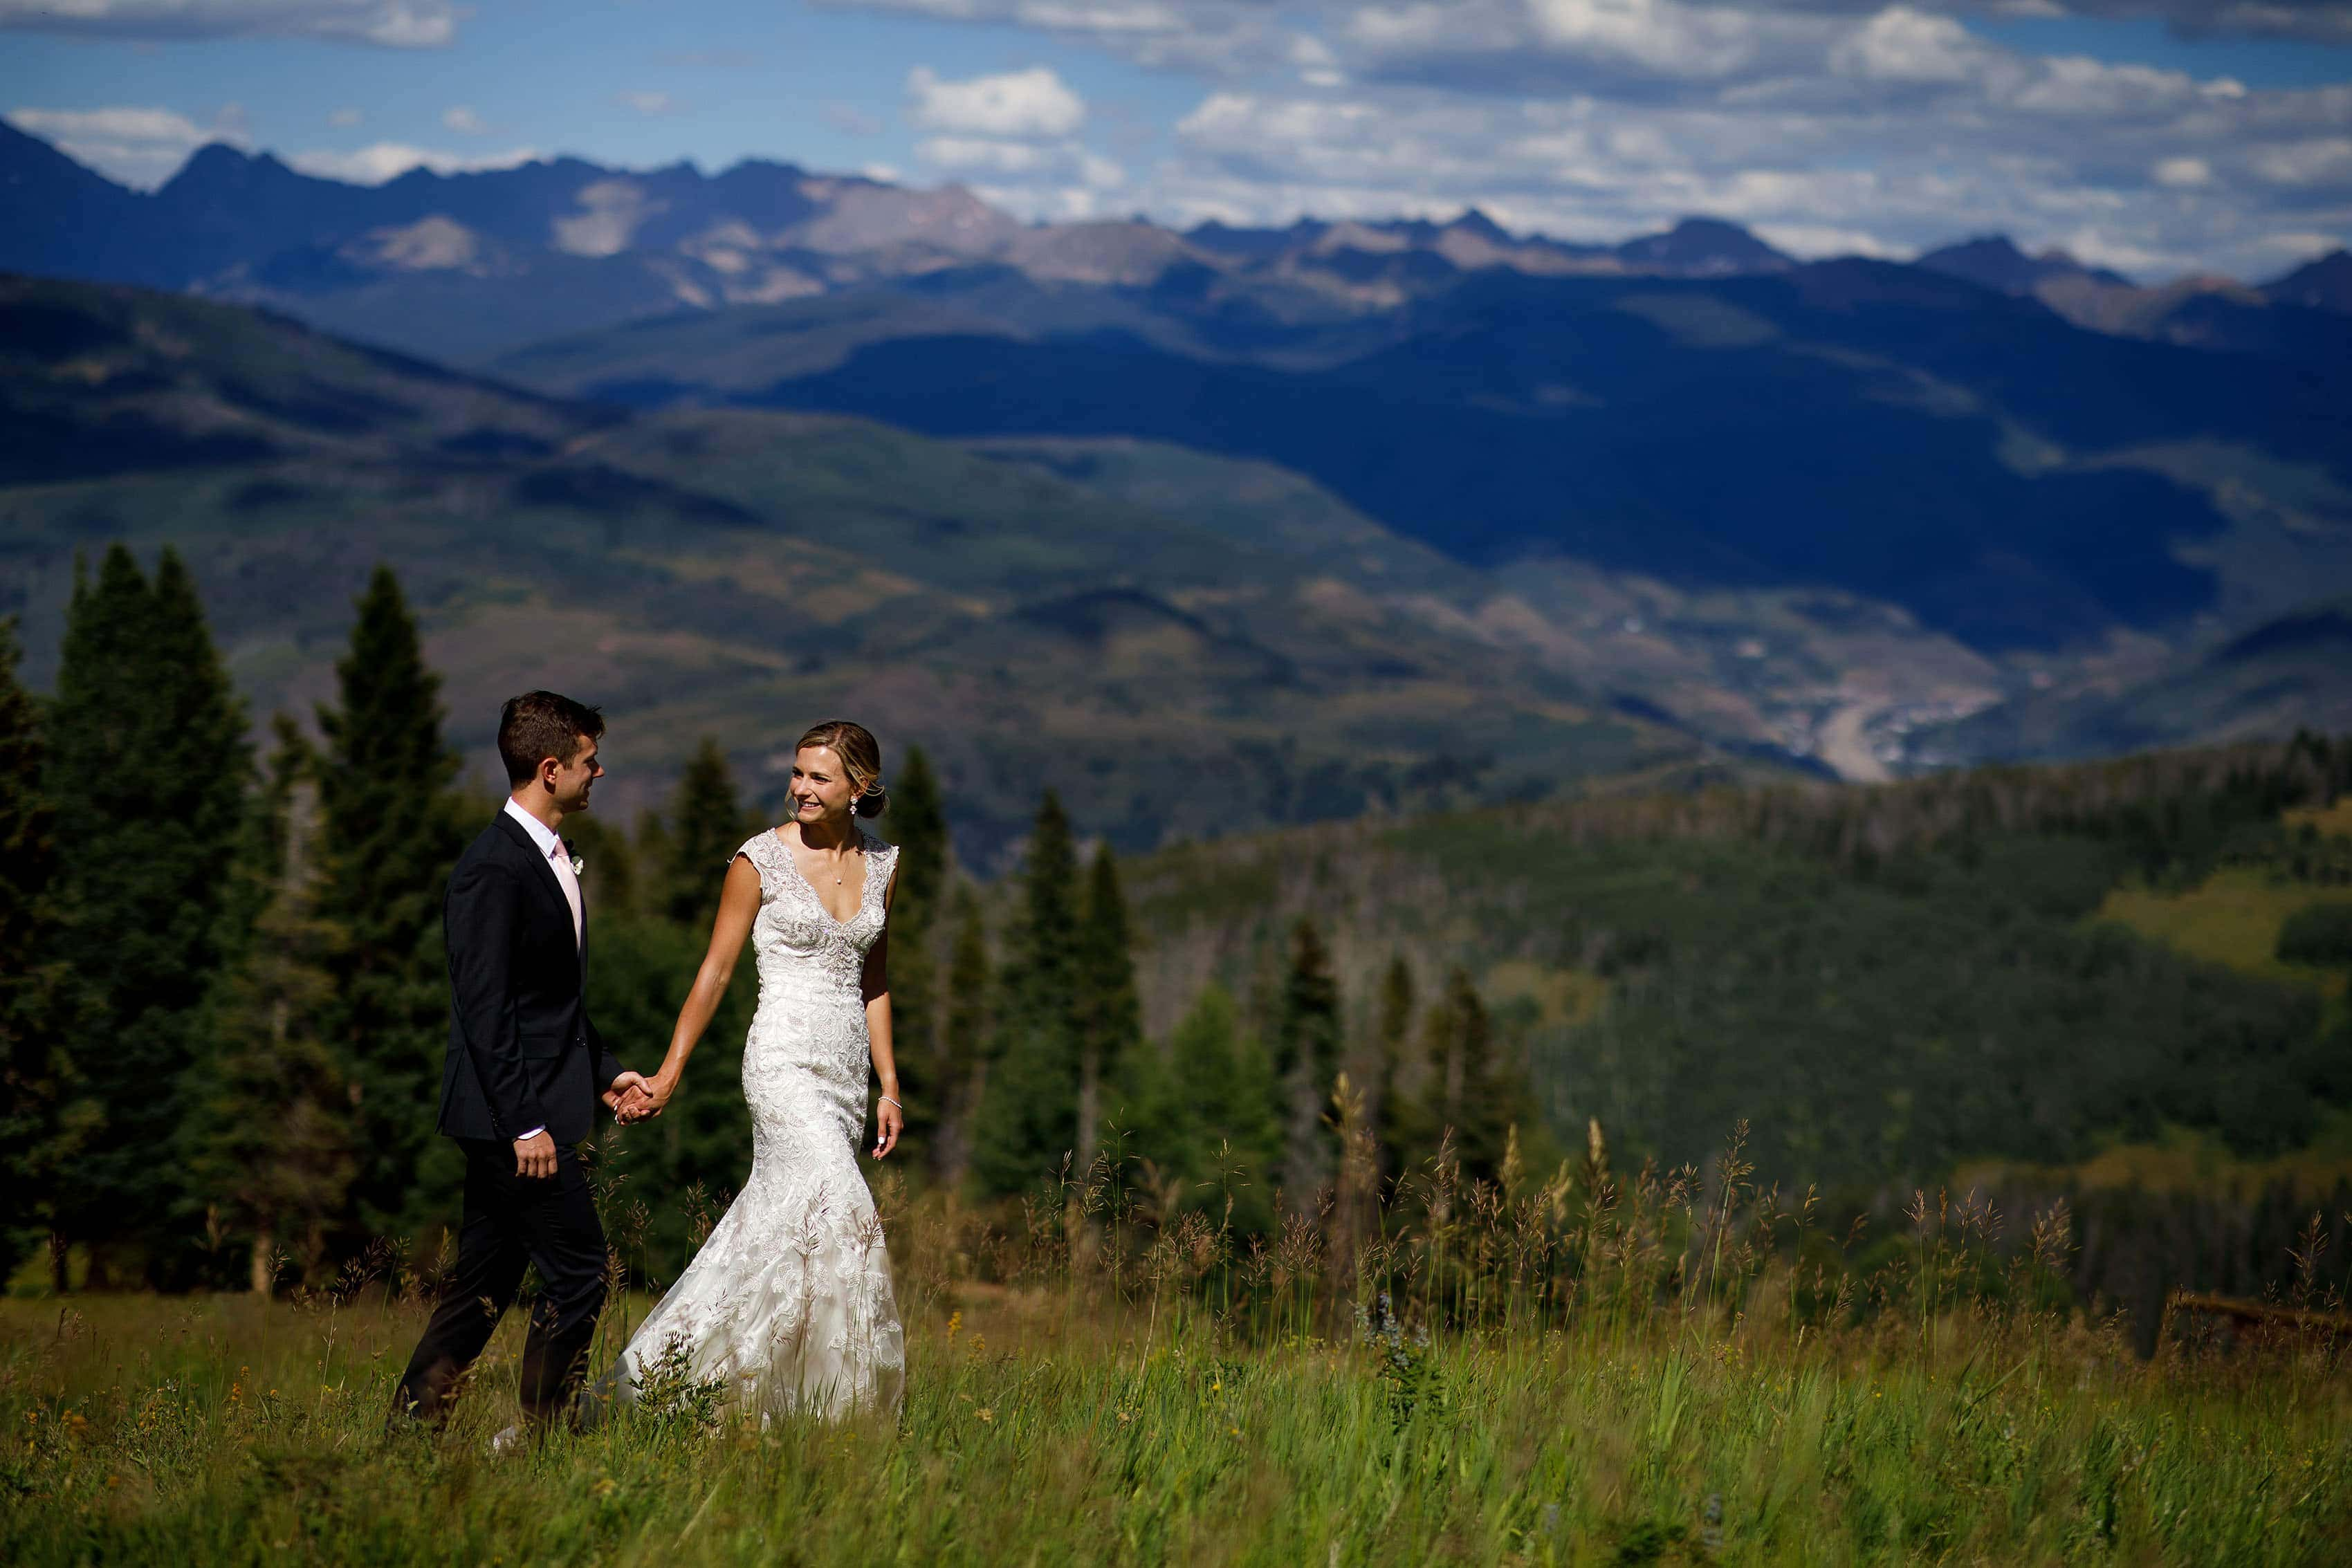 Melissa and Drew walk together atop Beaver Creek mountain